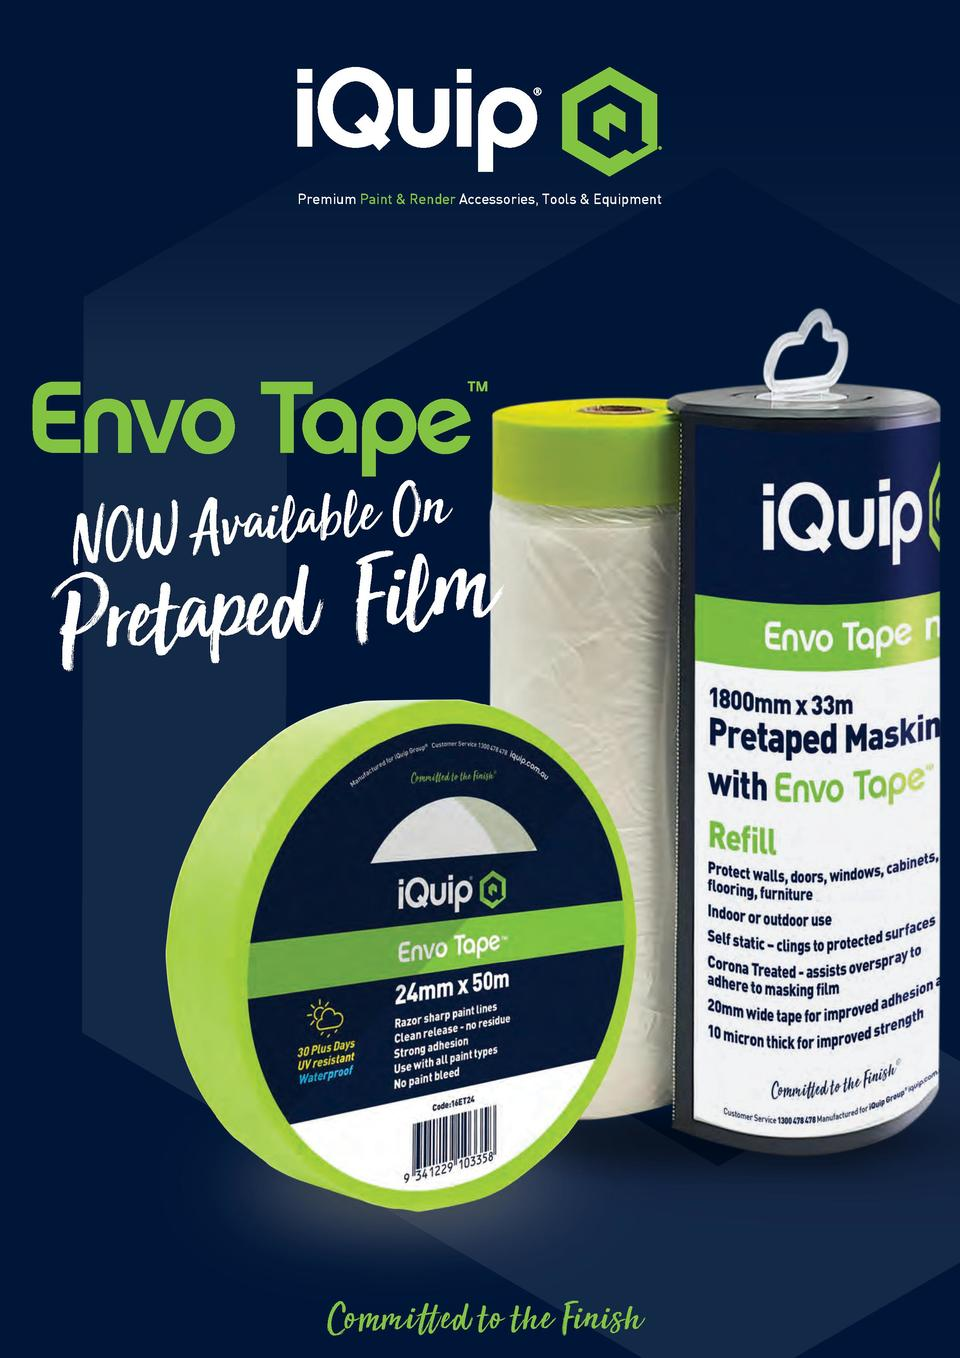 Premium Paint   Render Accessories, Tools   Equipment  Envo Tape       n O e l b a l i a v A NOW  m l i F d e p a Pret  Co...